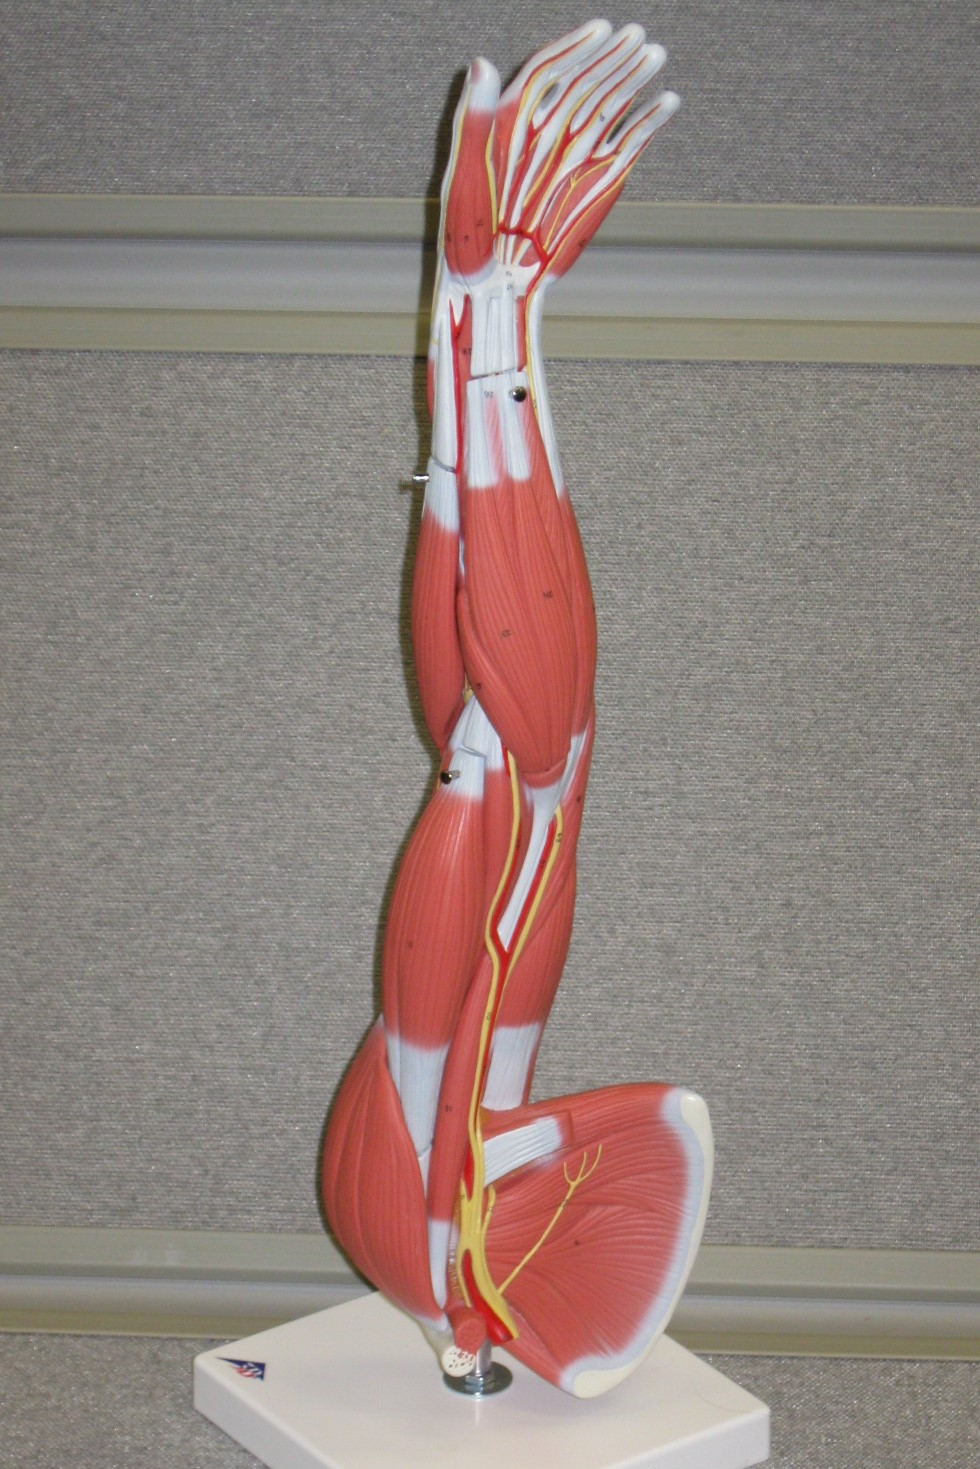 model of a muscled arm